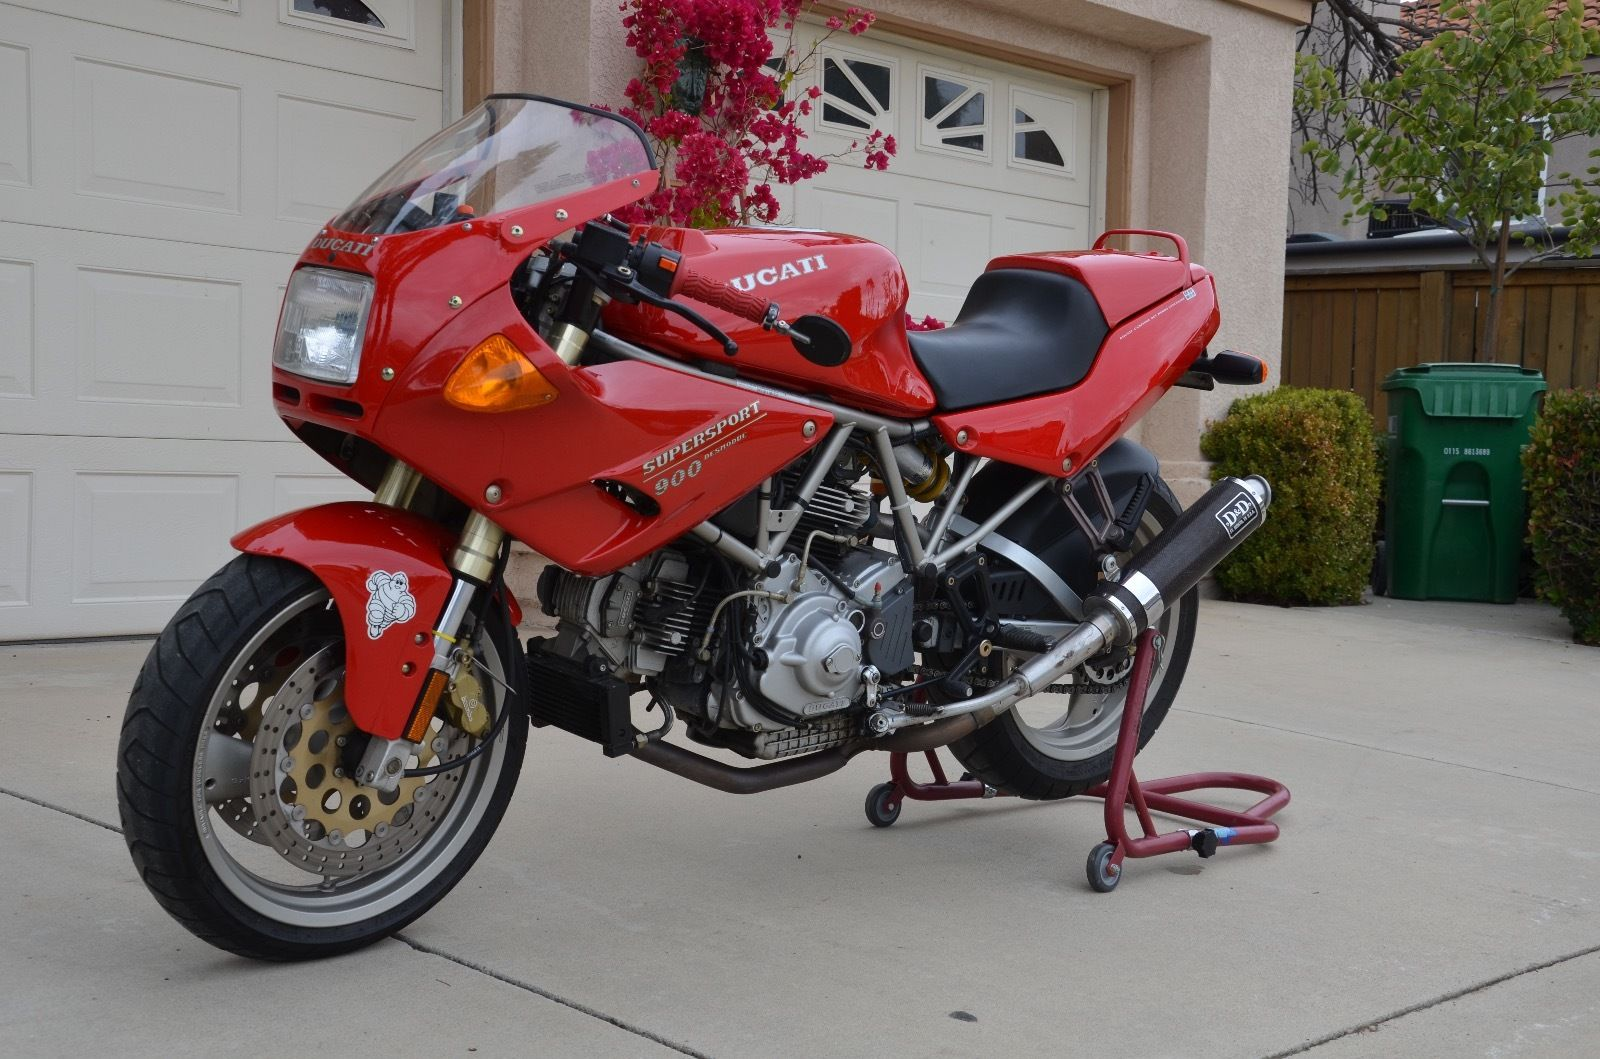 low mileage future classic 1995 ducati 900 ss cr for sale rare sportbikes for sale. Black Bedroom Furniture Sets. Home Design Ideas